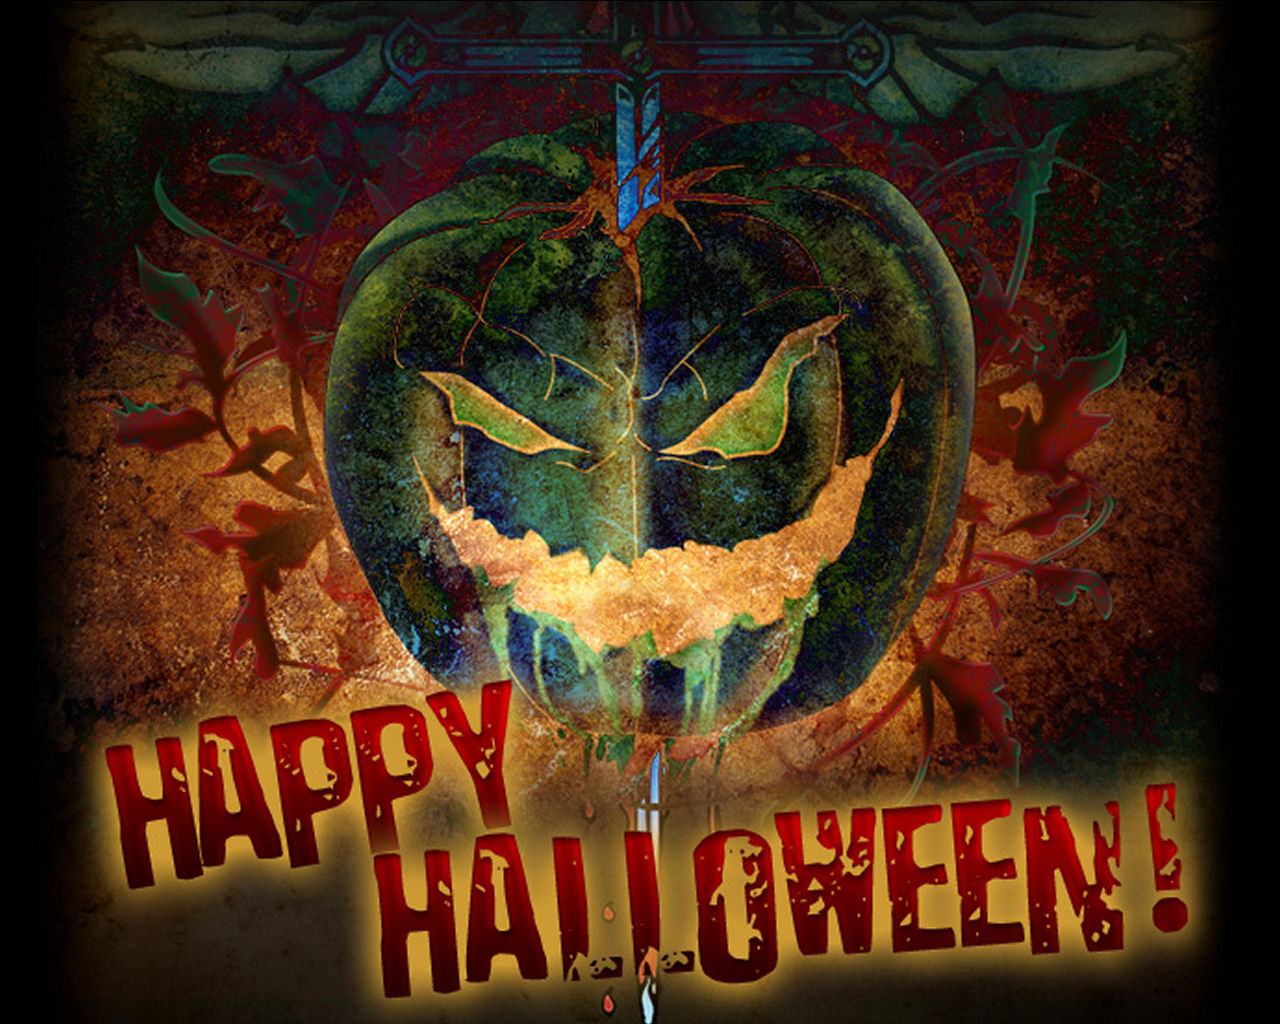 Download Free Halloween Fairy Pictures HD Wallpapers For ...